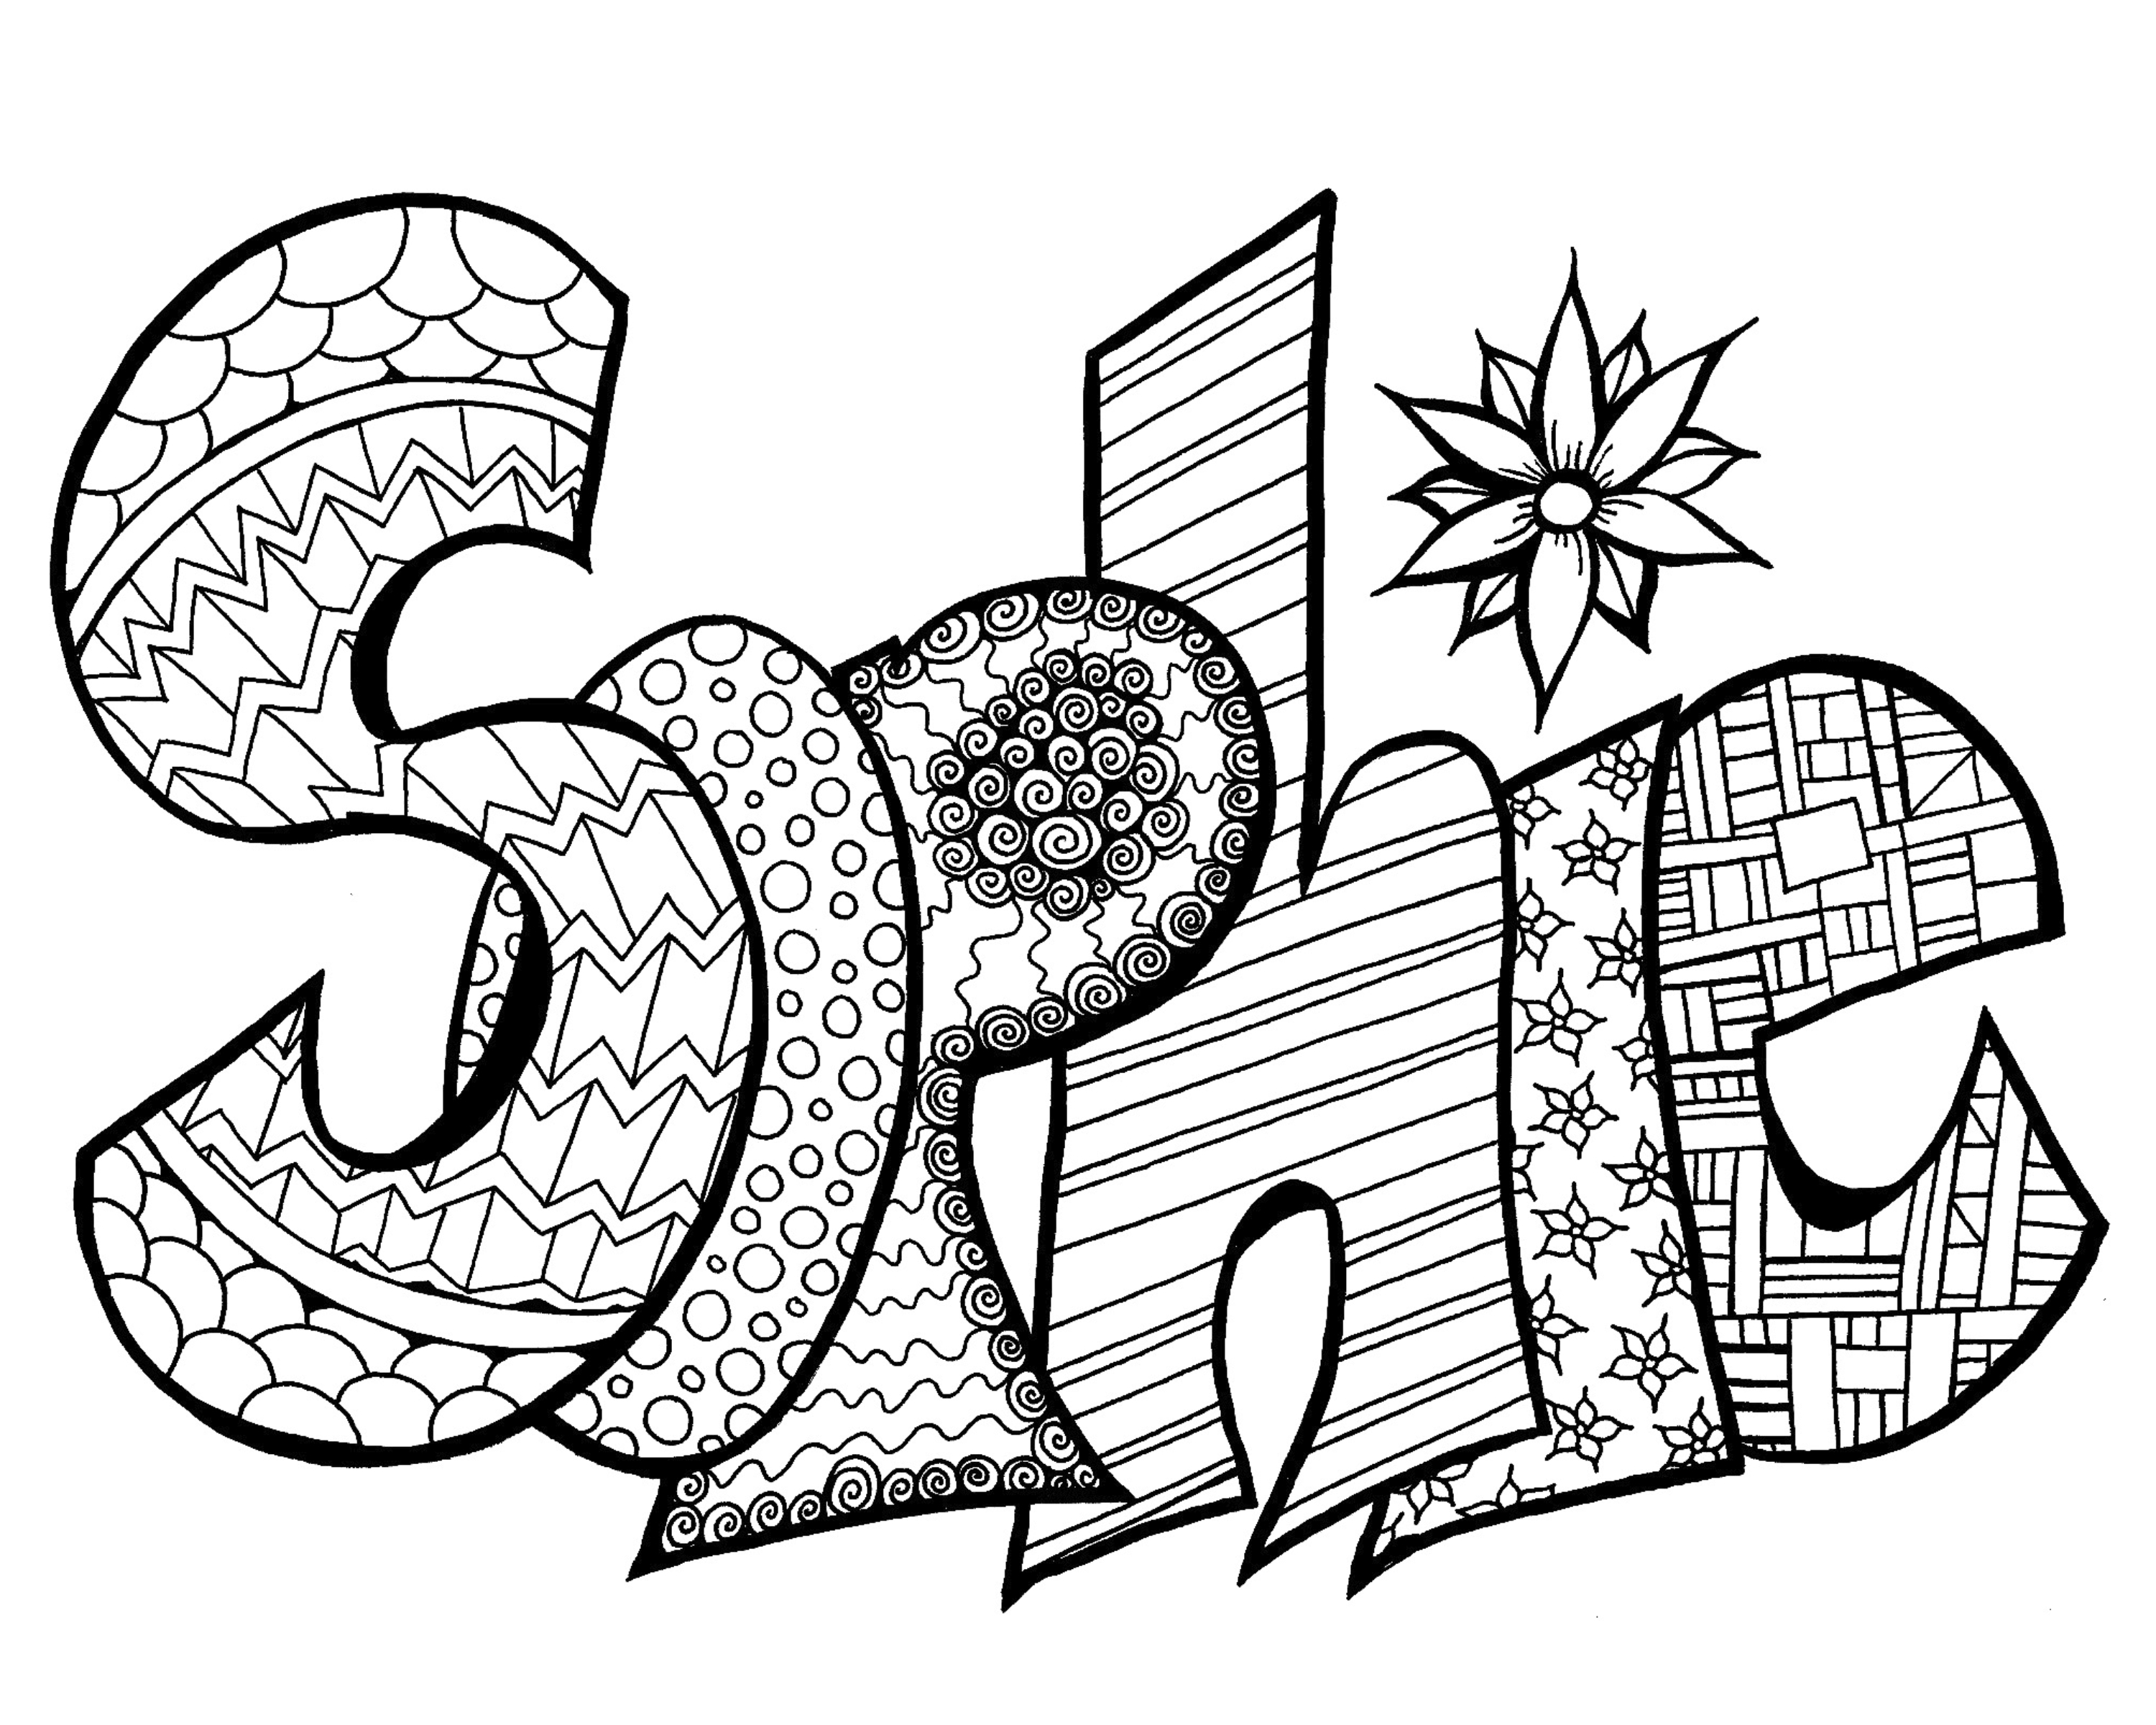 Your Free Printable Coloring Page